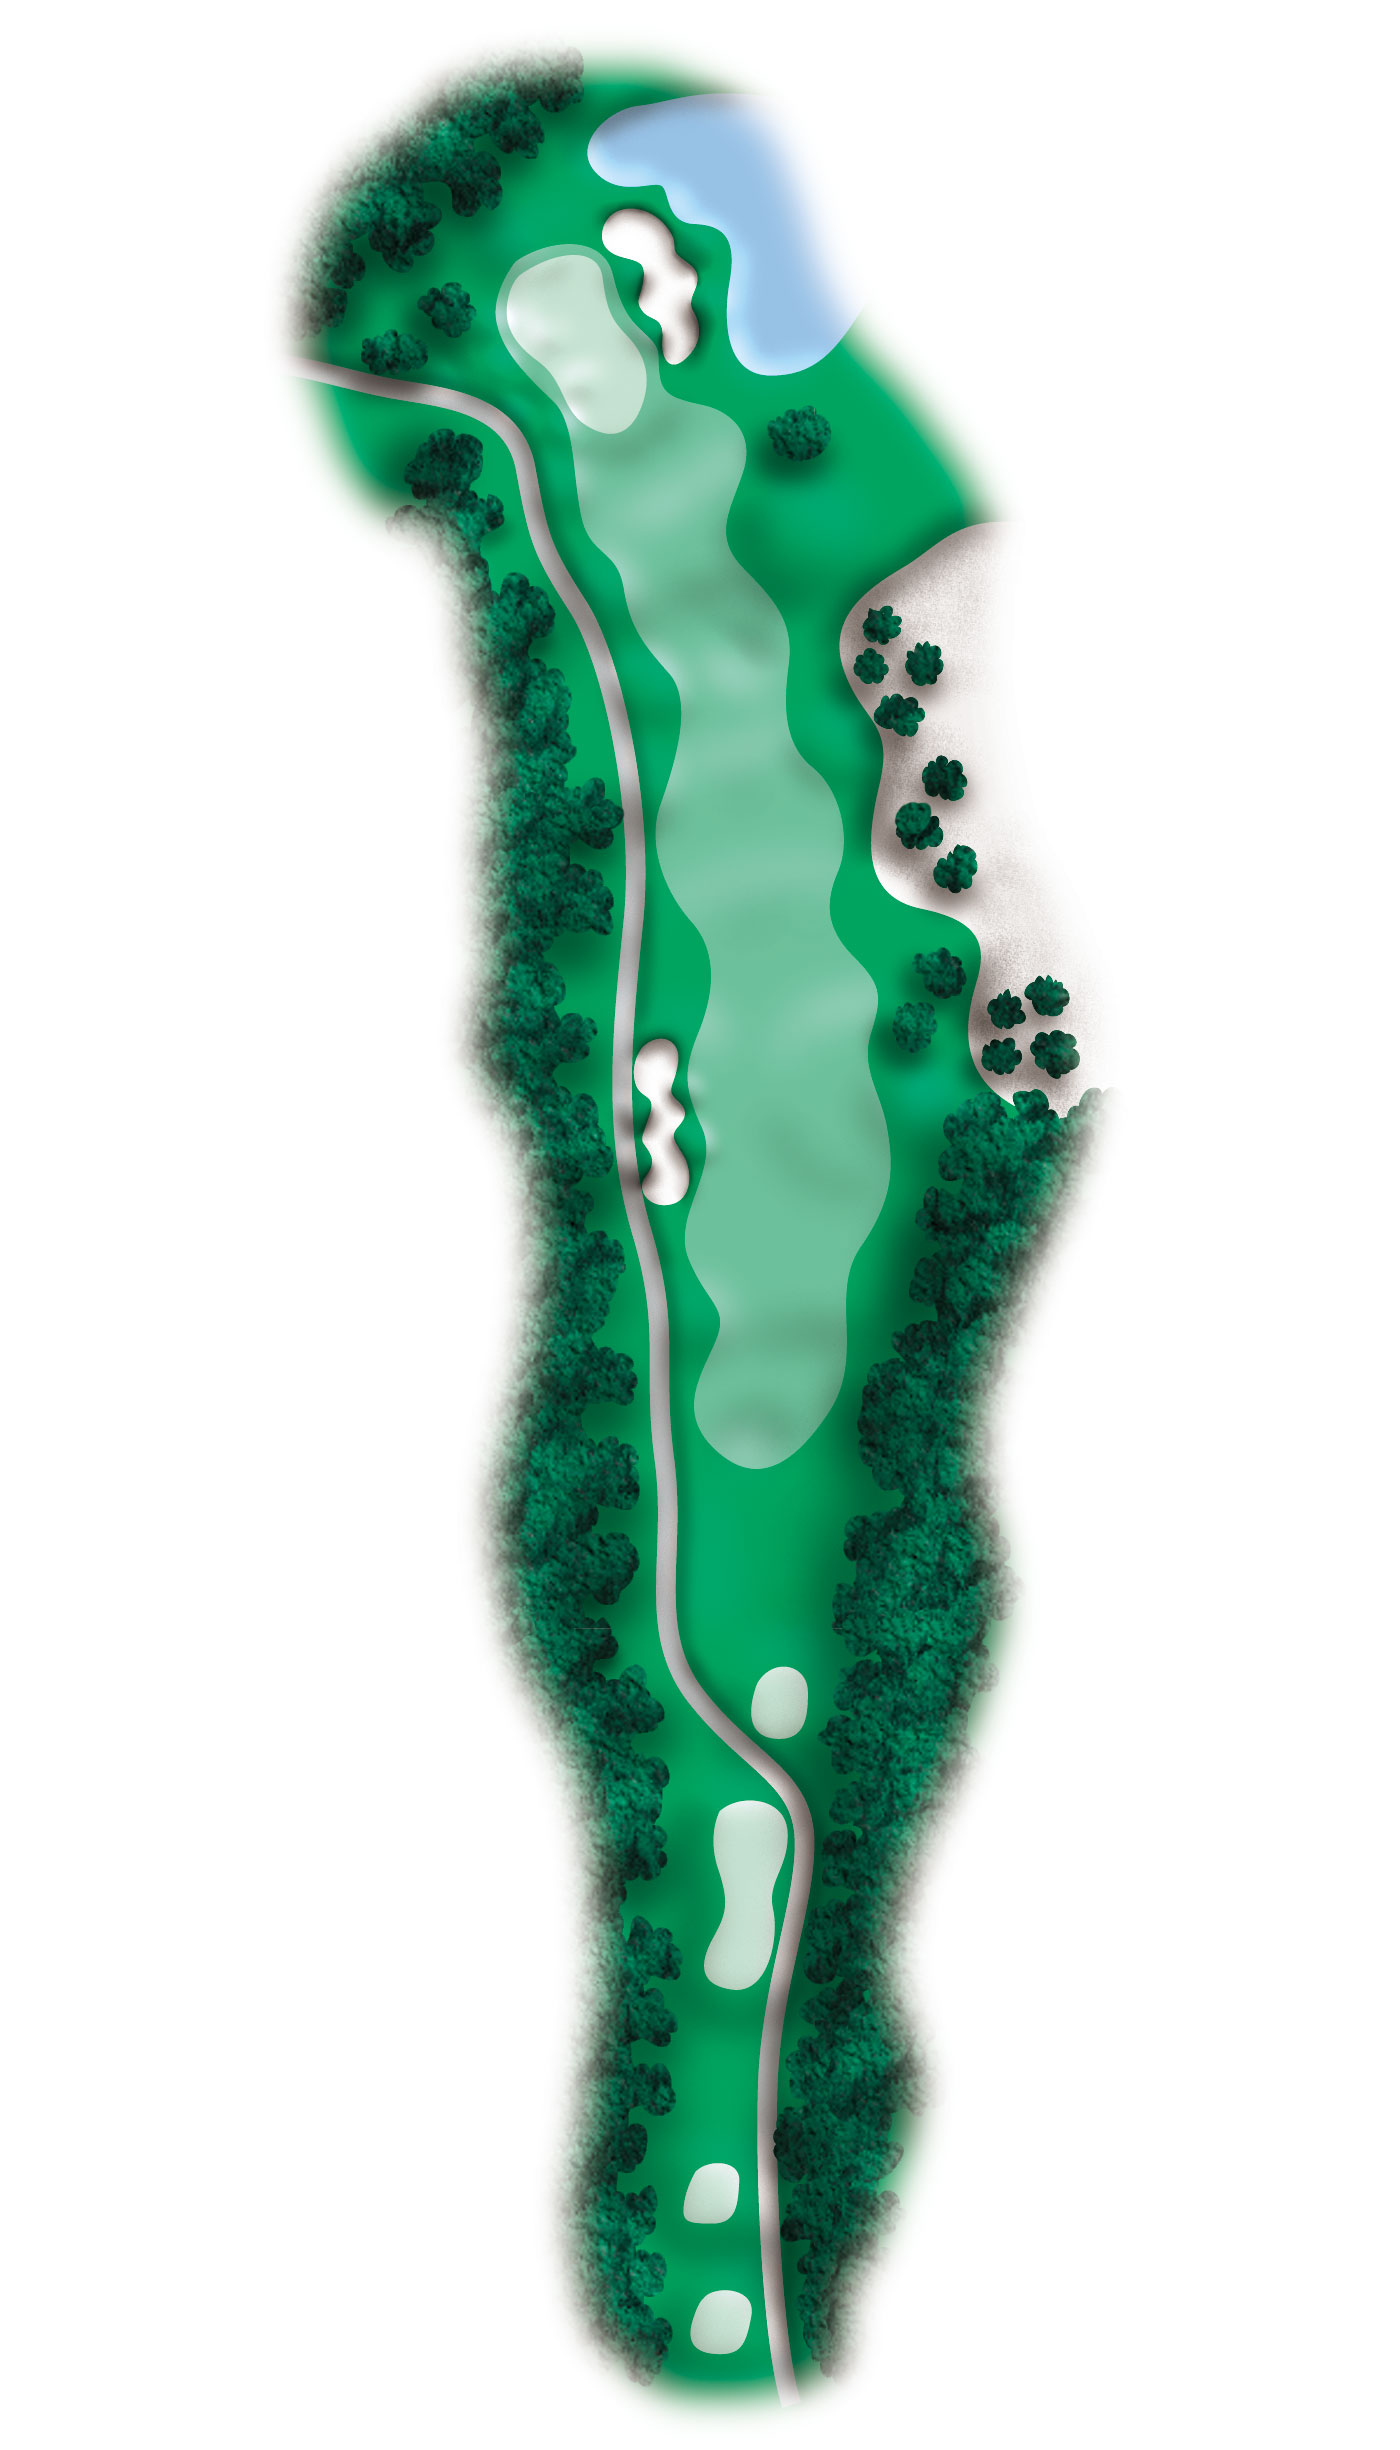 hole 9 diagram